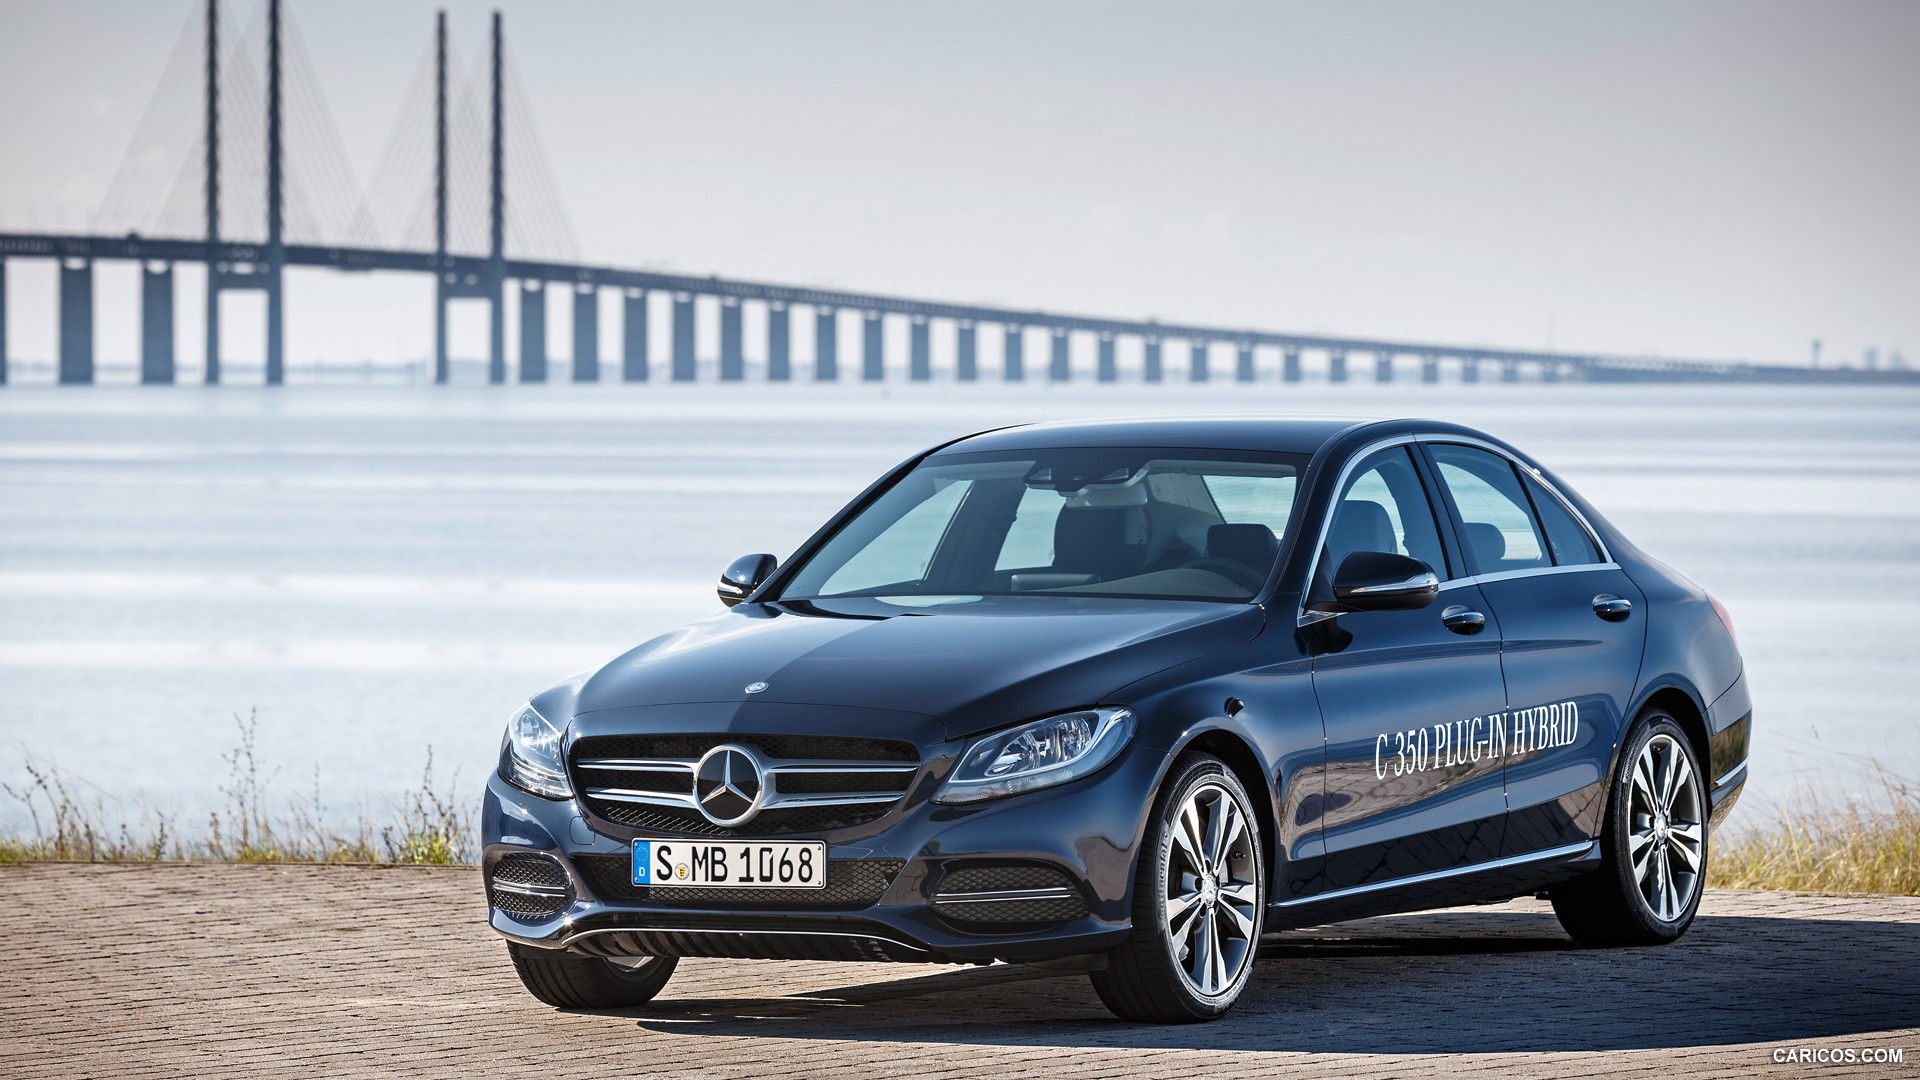 Mercedes-Benz C350 Plug-In Hybrid photo 135777